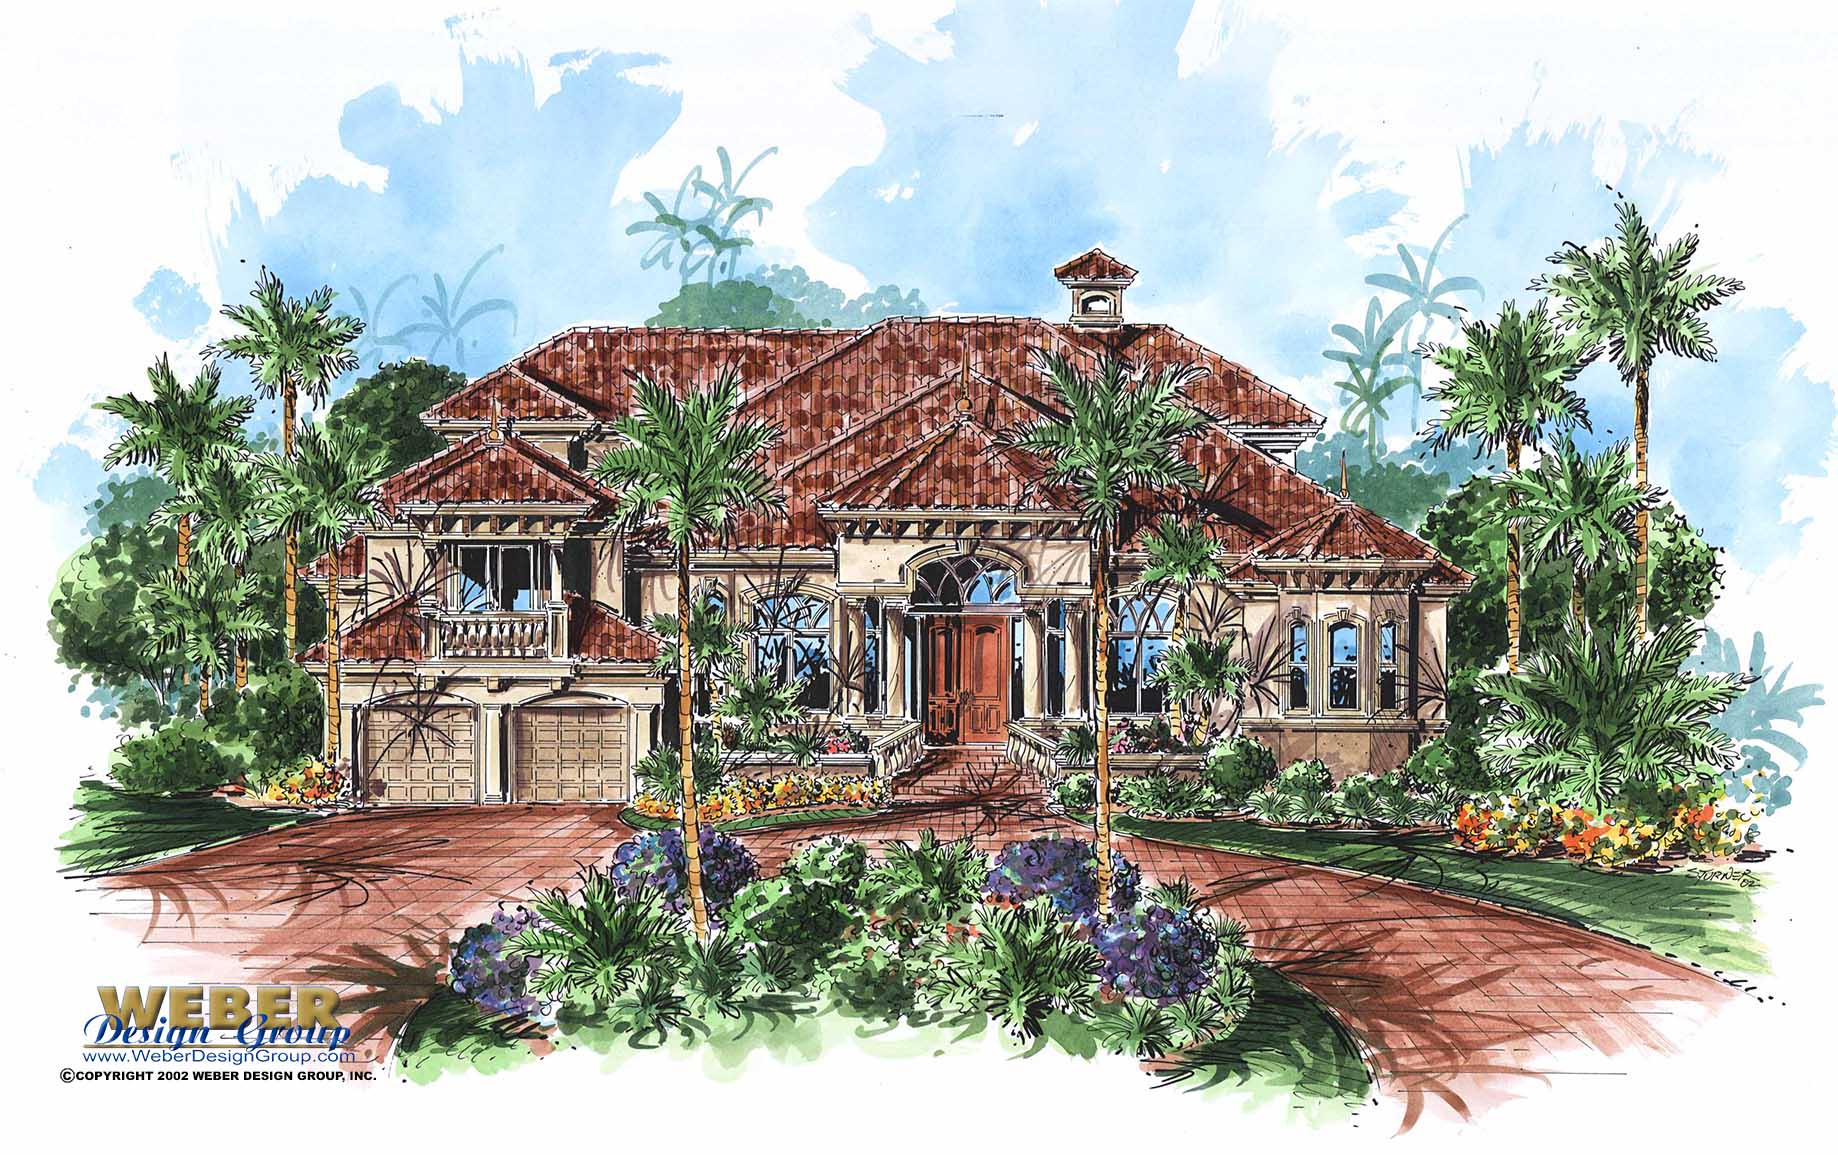 Mediterranean House Plans Two Story Inside on two story custom house plans, two story carriage house plans, contemporary house plans, two story lake house plans, southern house plans, two story mountain house plans, two story adobe house plans, dream luxury house plans, best two-story house plans, large two-story house plans, two story beach house plans, two story log house plans, two story acadian house plans, two story california house plans, two story split level house plans, unique two-story house plans, 2 story italian house plans, two story barn plans, traditional house plans, two story pool house plans,